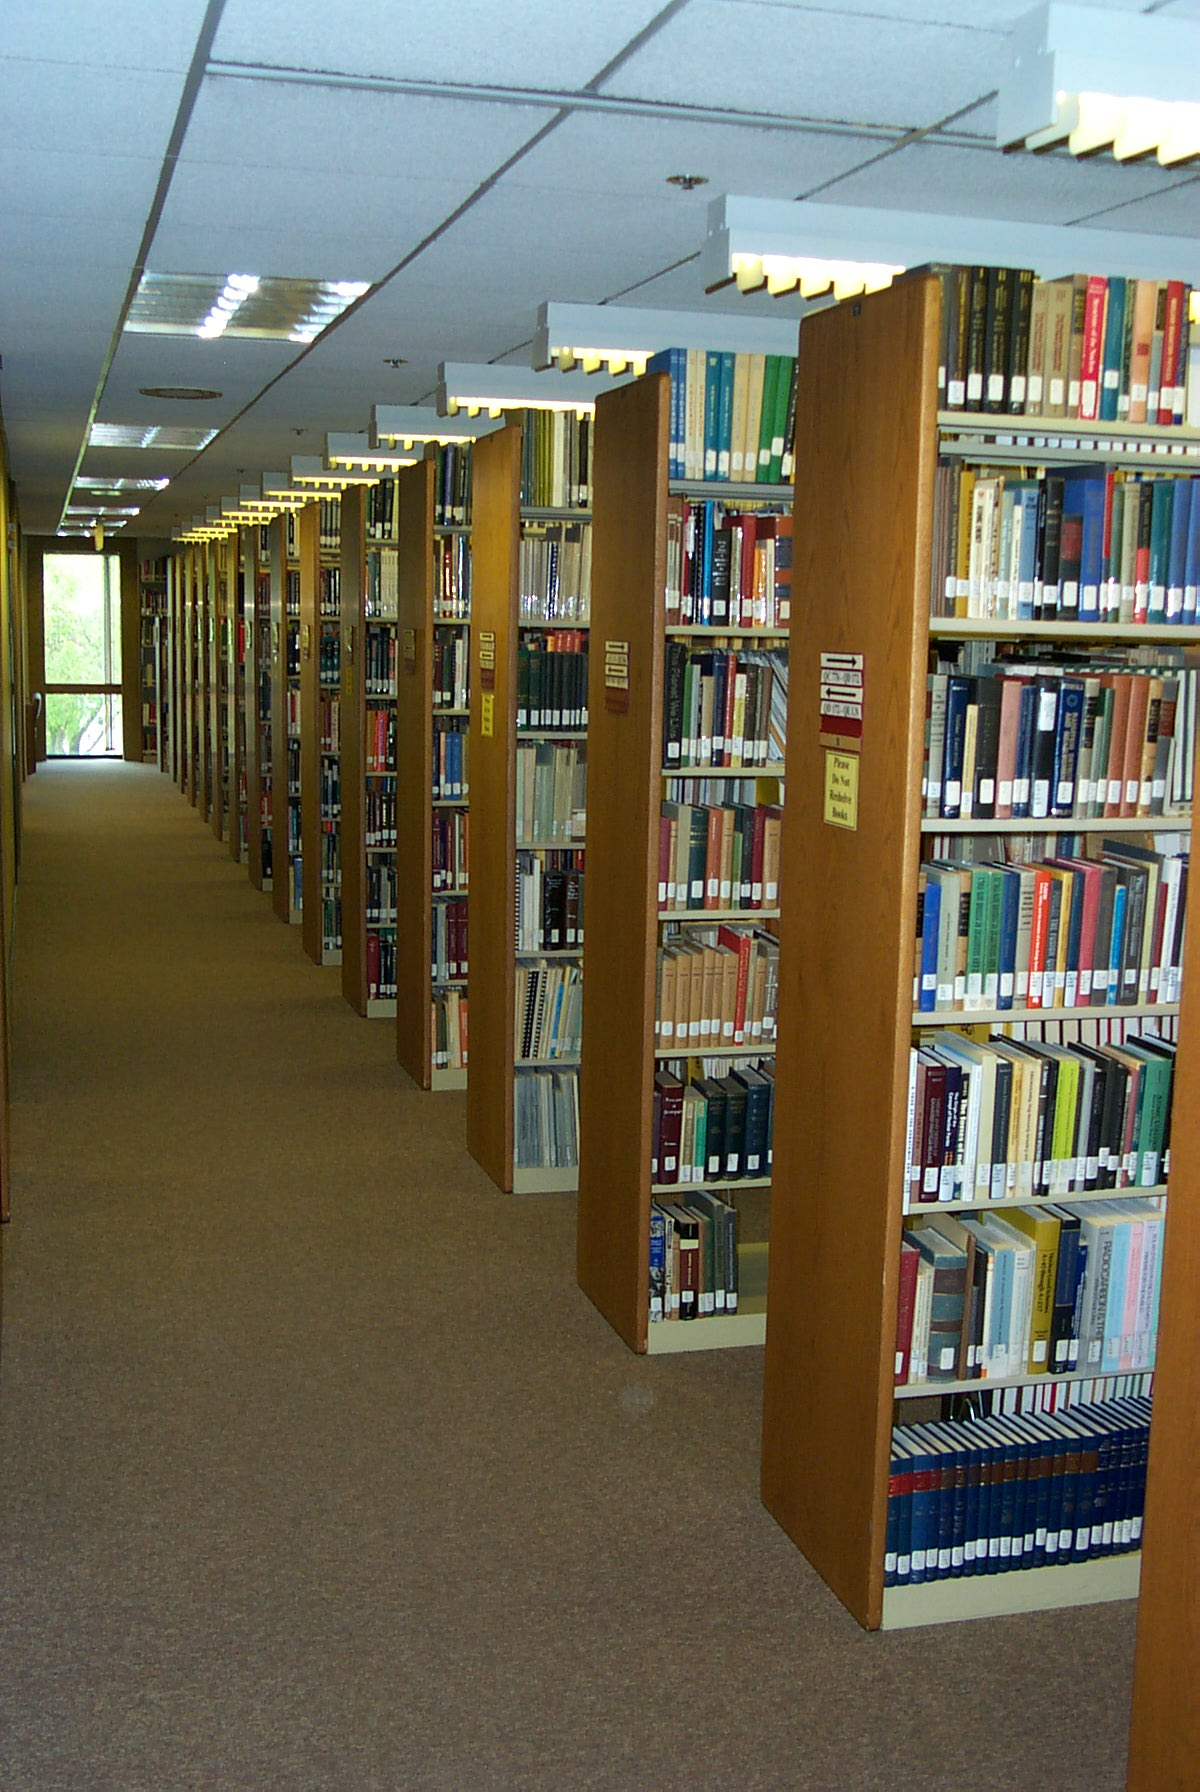 Library Books on the Shelf